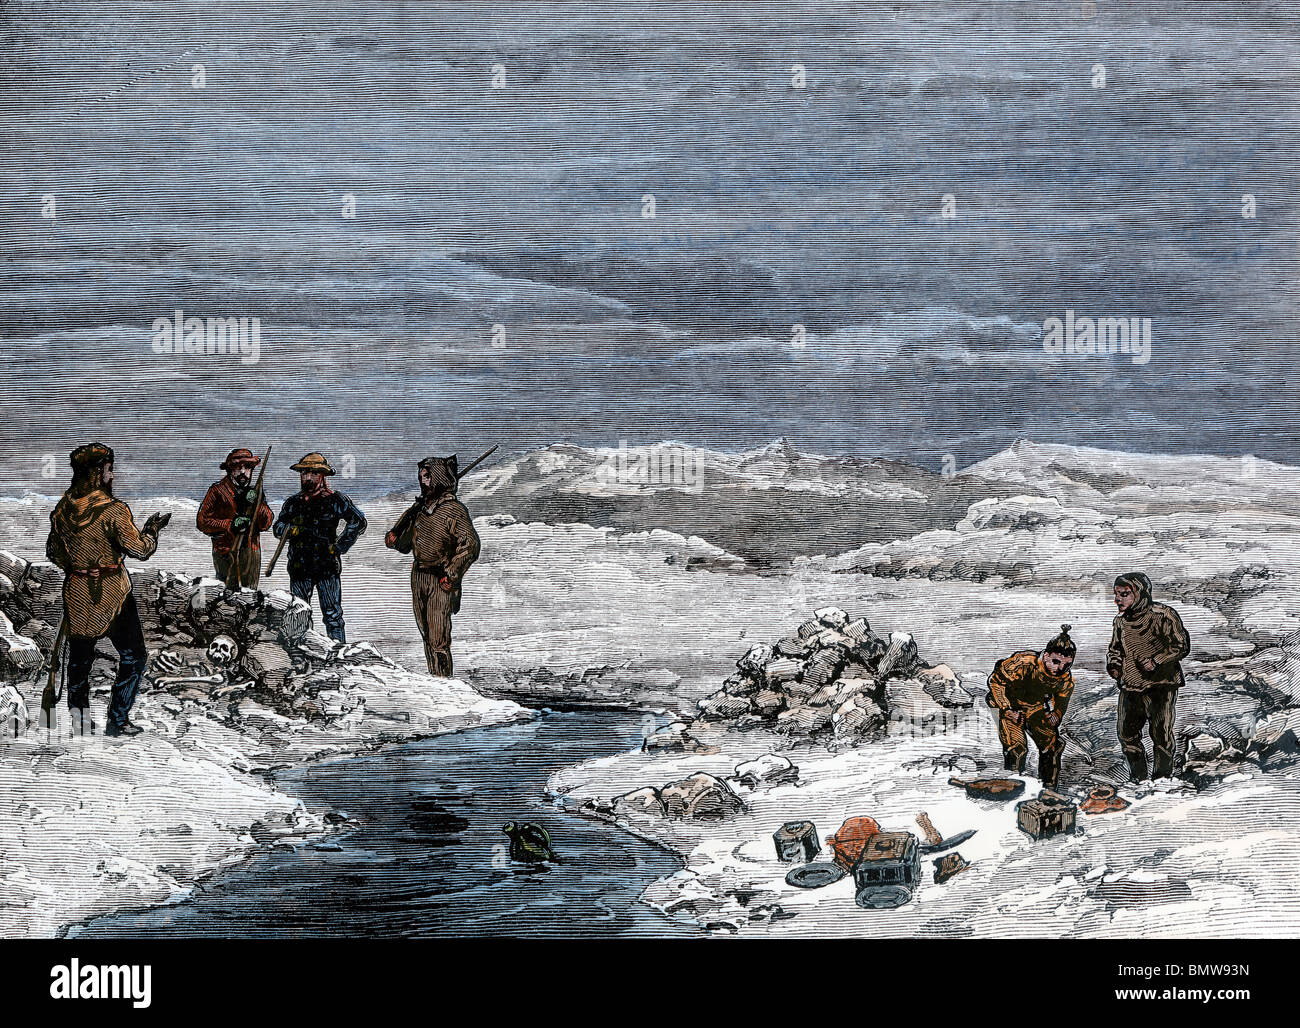 Grave of Franklin Expedition member Lt. John Irving found by Schwatka's American search party in Greenland, - Stock Image